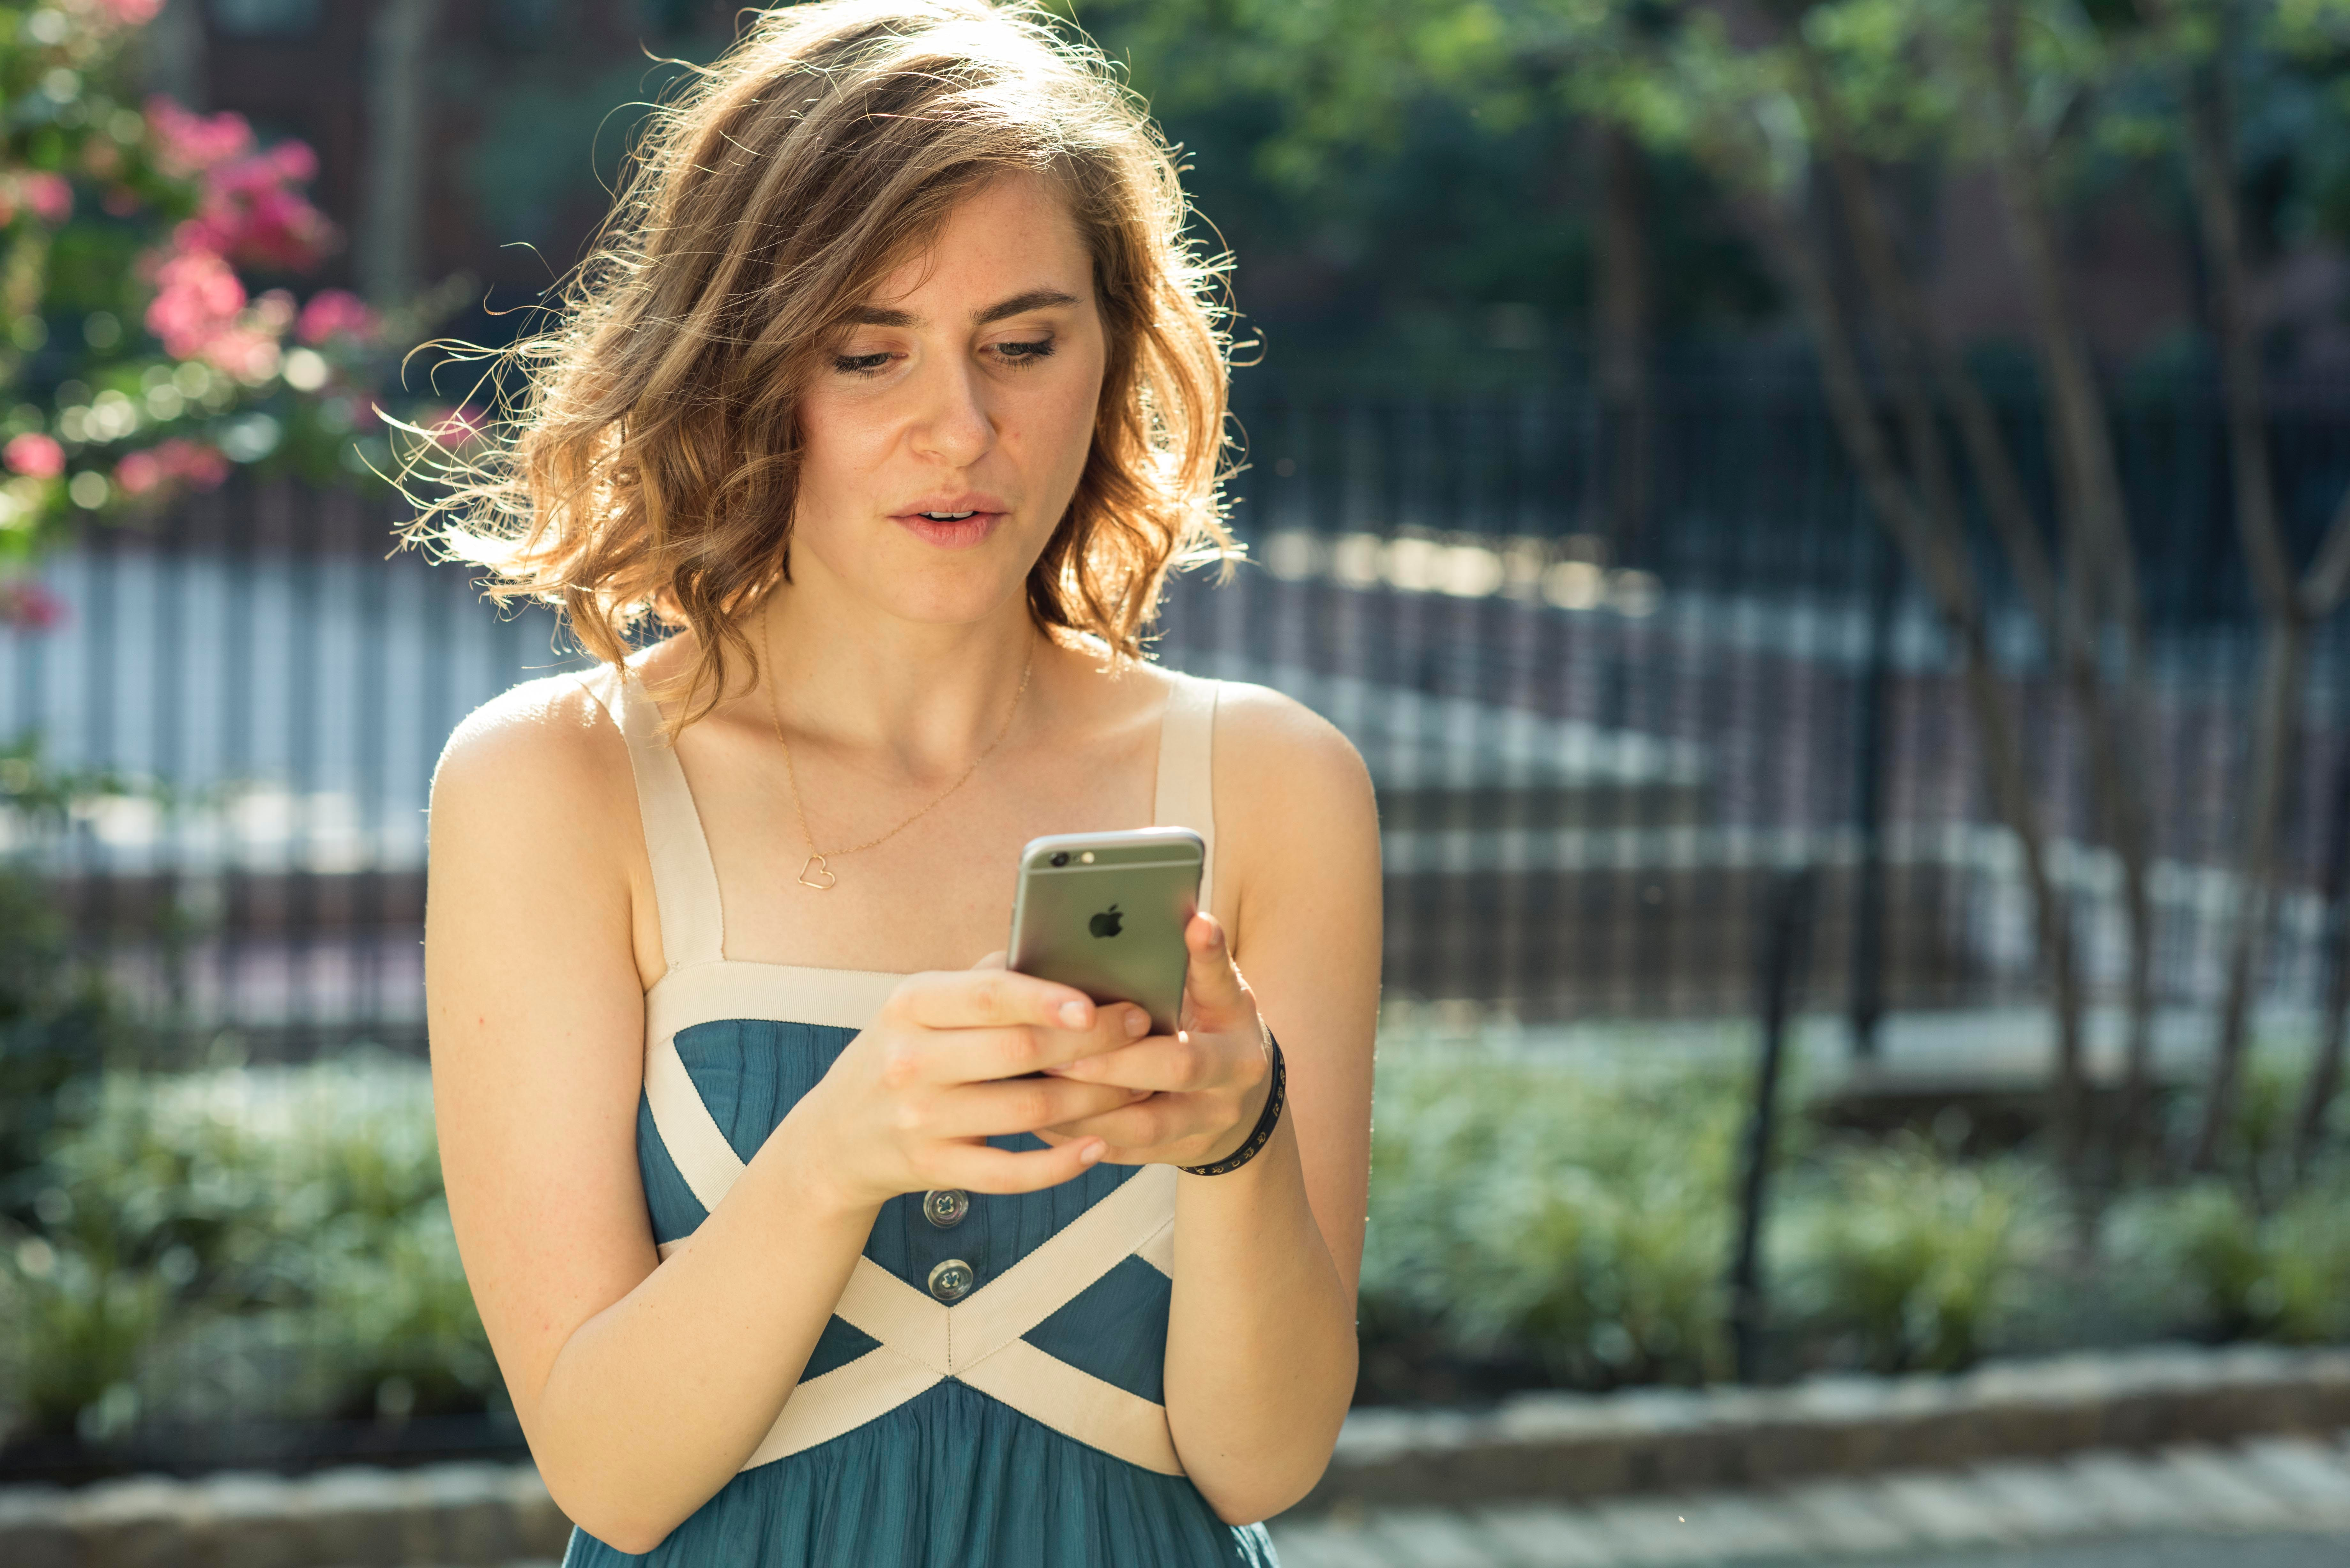 7 Relationship Quizzes For Singles To Take